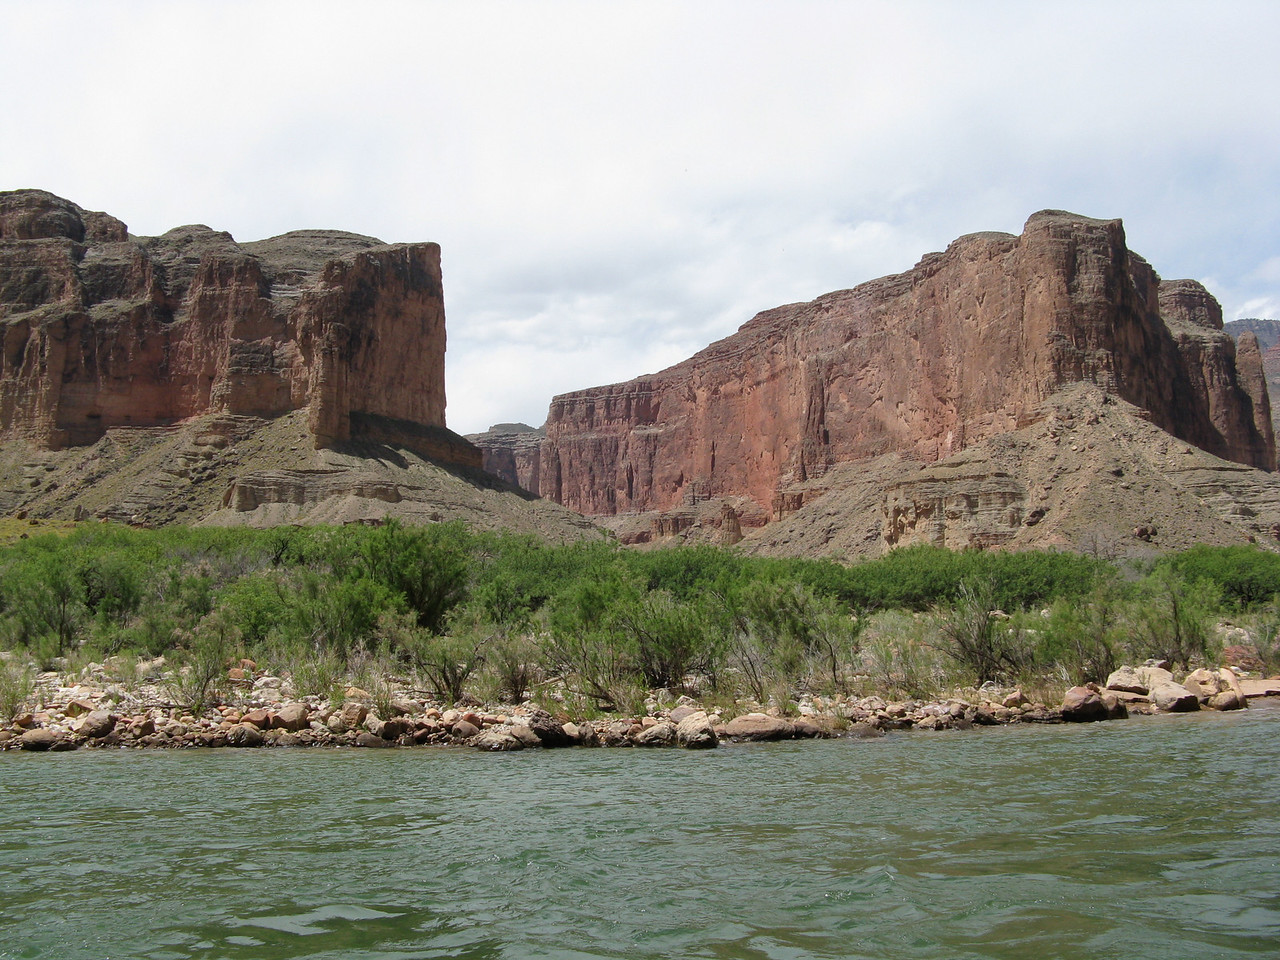 Mile 52.5:  Nankoweap Canyon.  On the left side of the picture, in the cliff just above the slope, are little dark areas which are openings to granaries.  These rooms stored grain for Puebloan people about 1100 AD.